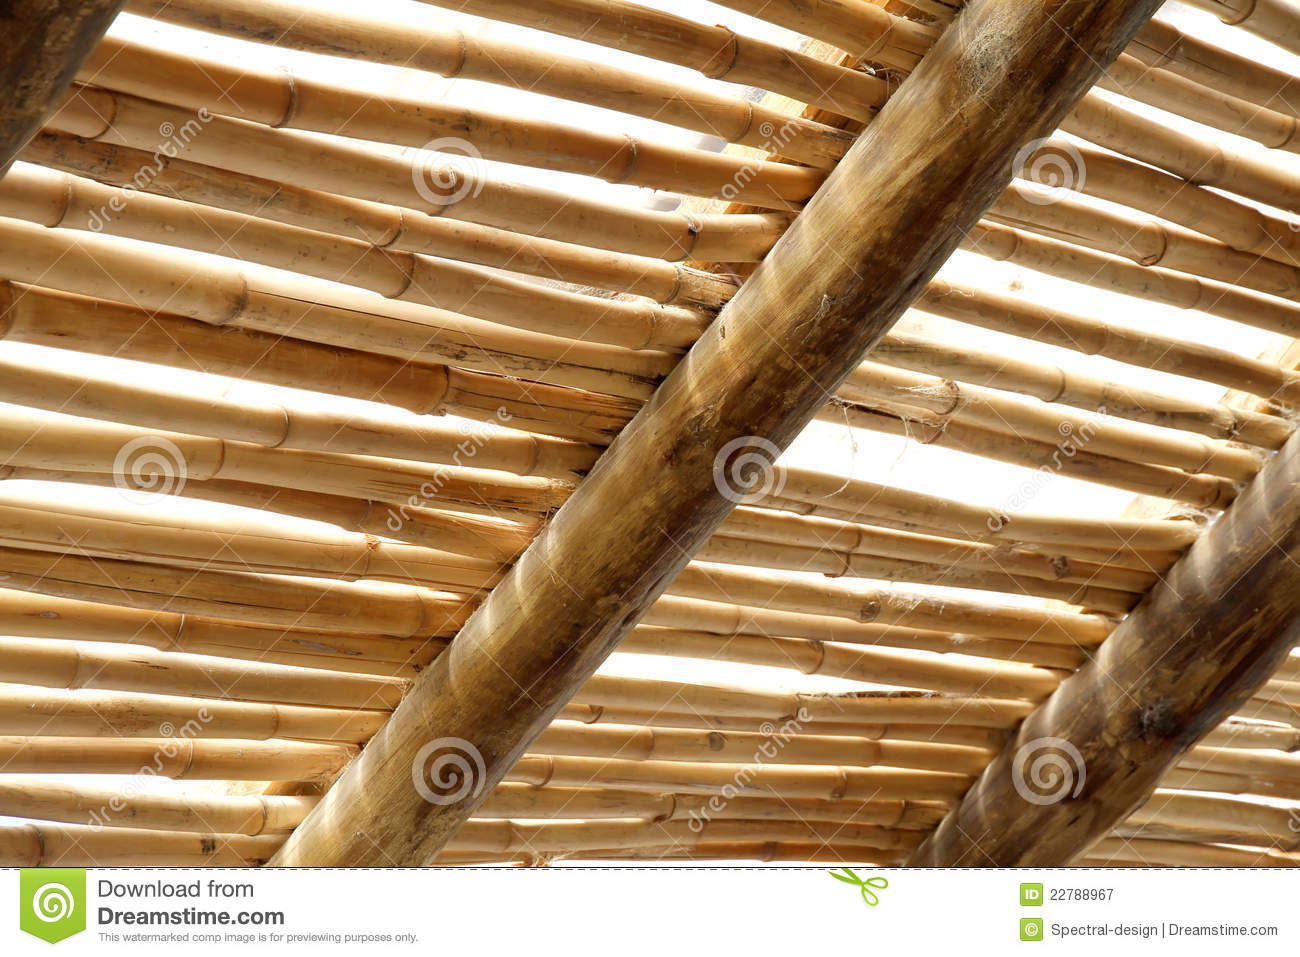 Bamboo roof royalty free stock photography image 22788967 for Bamboo roofing materials